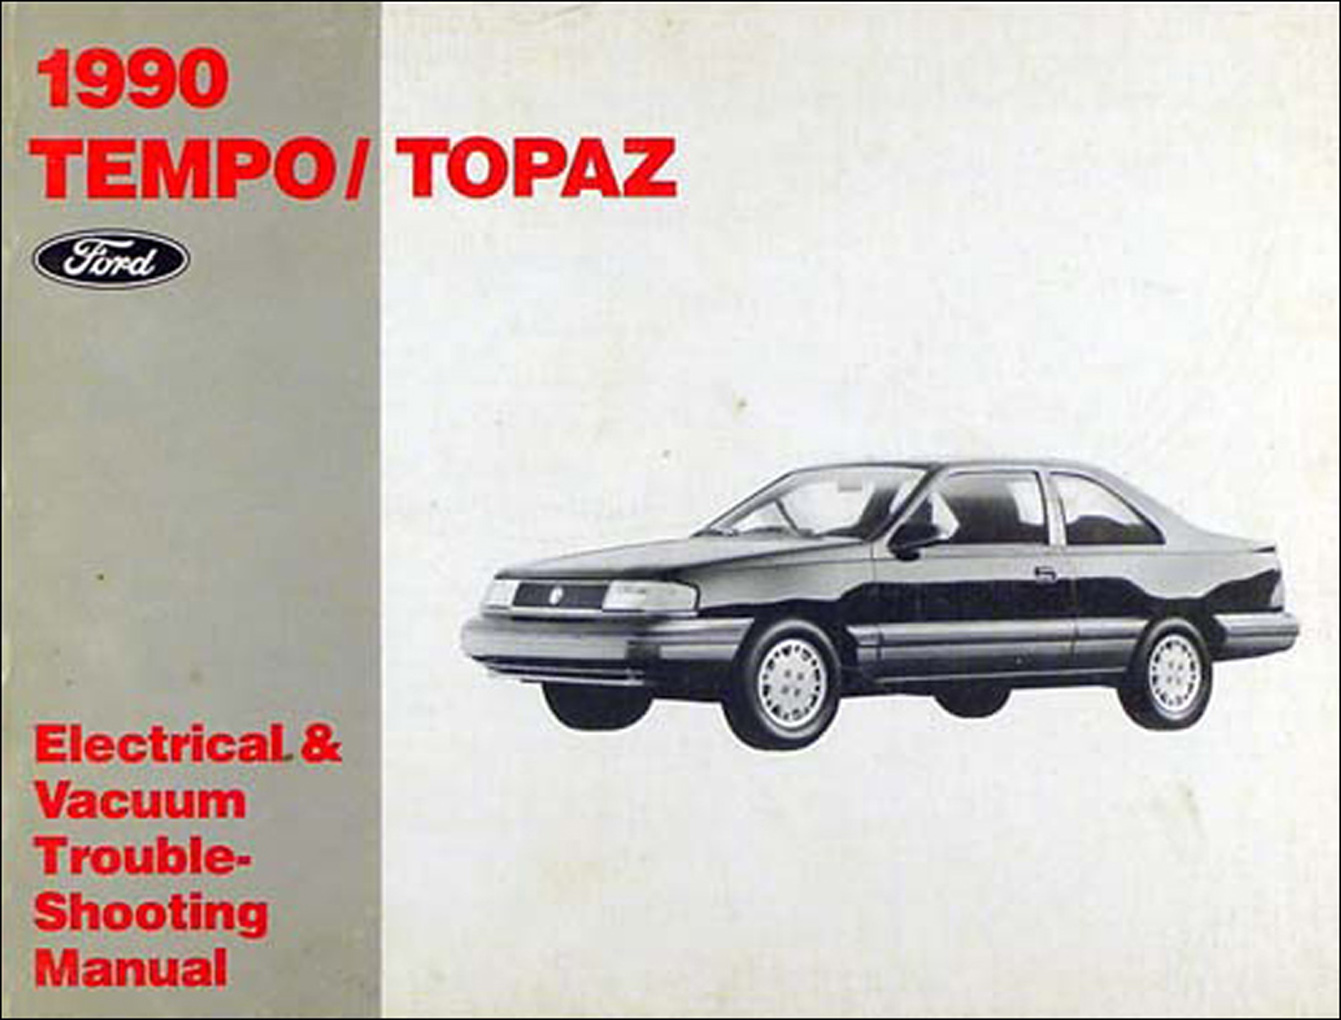 Search 1994 Ford Tempo Wiring Diagram 1990 Mercury Topaz Electrical Vacuum Troubleshooting Manual